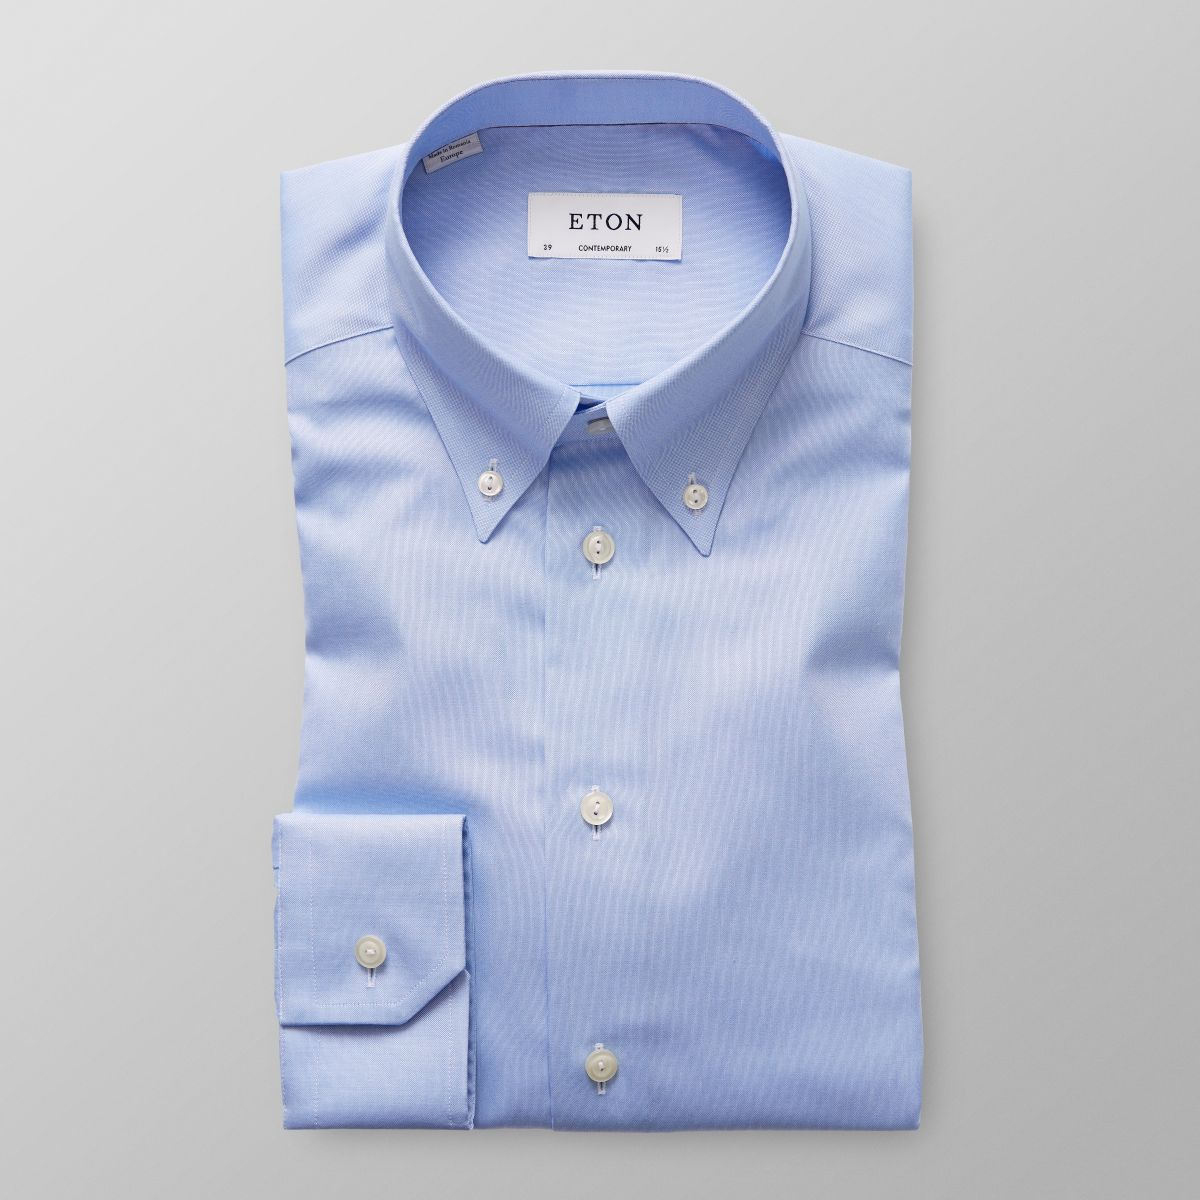 Light Blue Pinpoint Oxford Shirt Contemporary Fit Eton